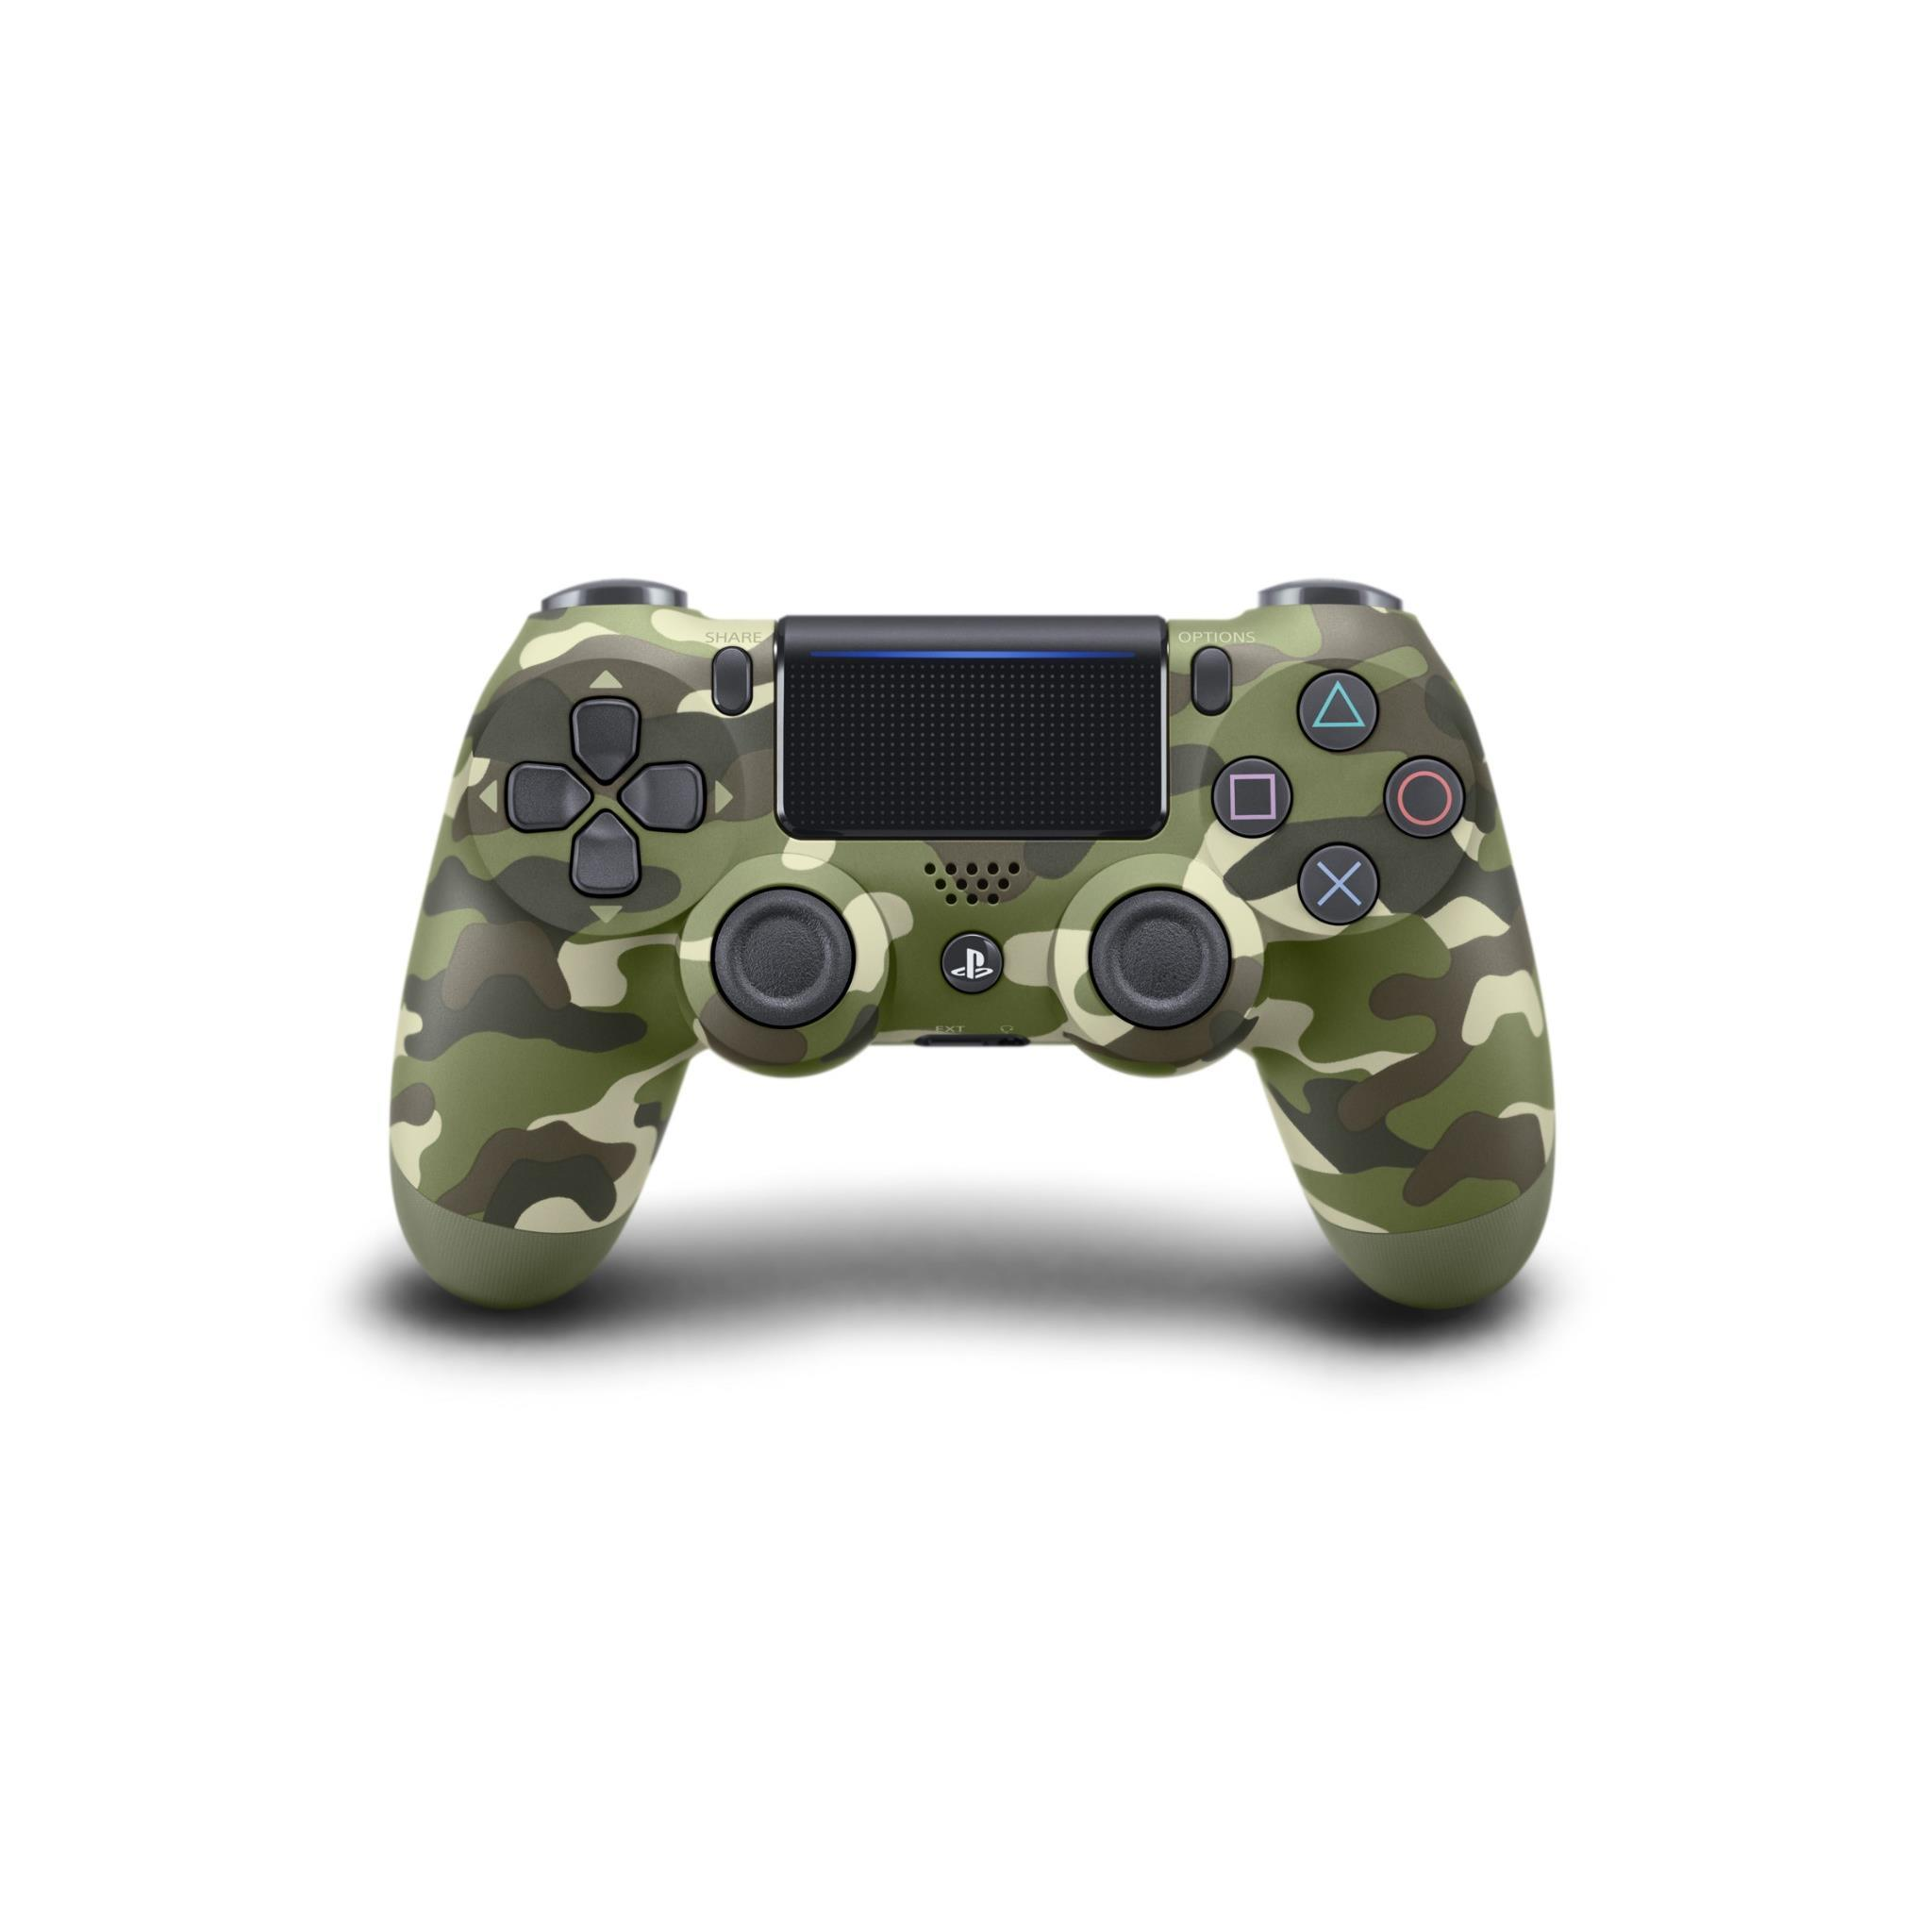 PS4 Playstation 4 Dualshock 4 Wireless Controller Green Camo